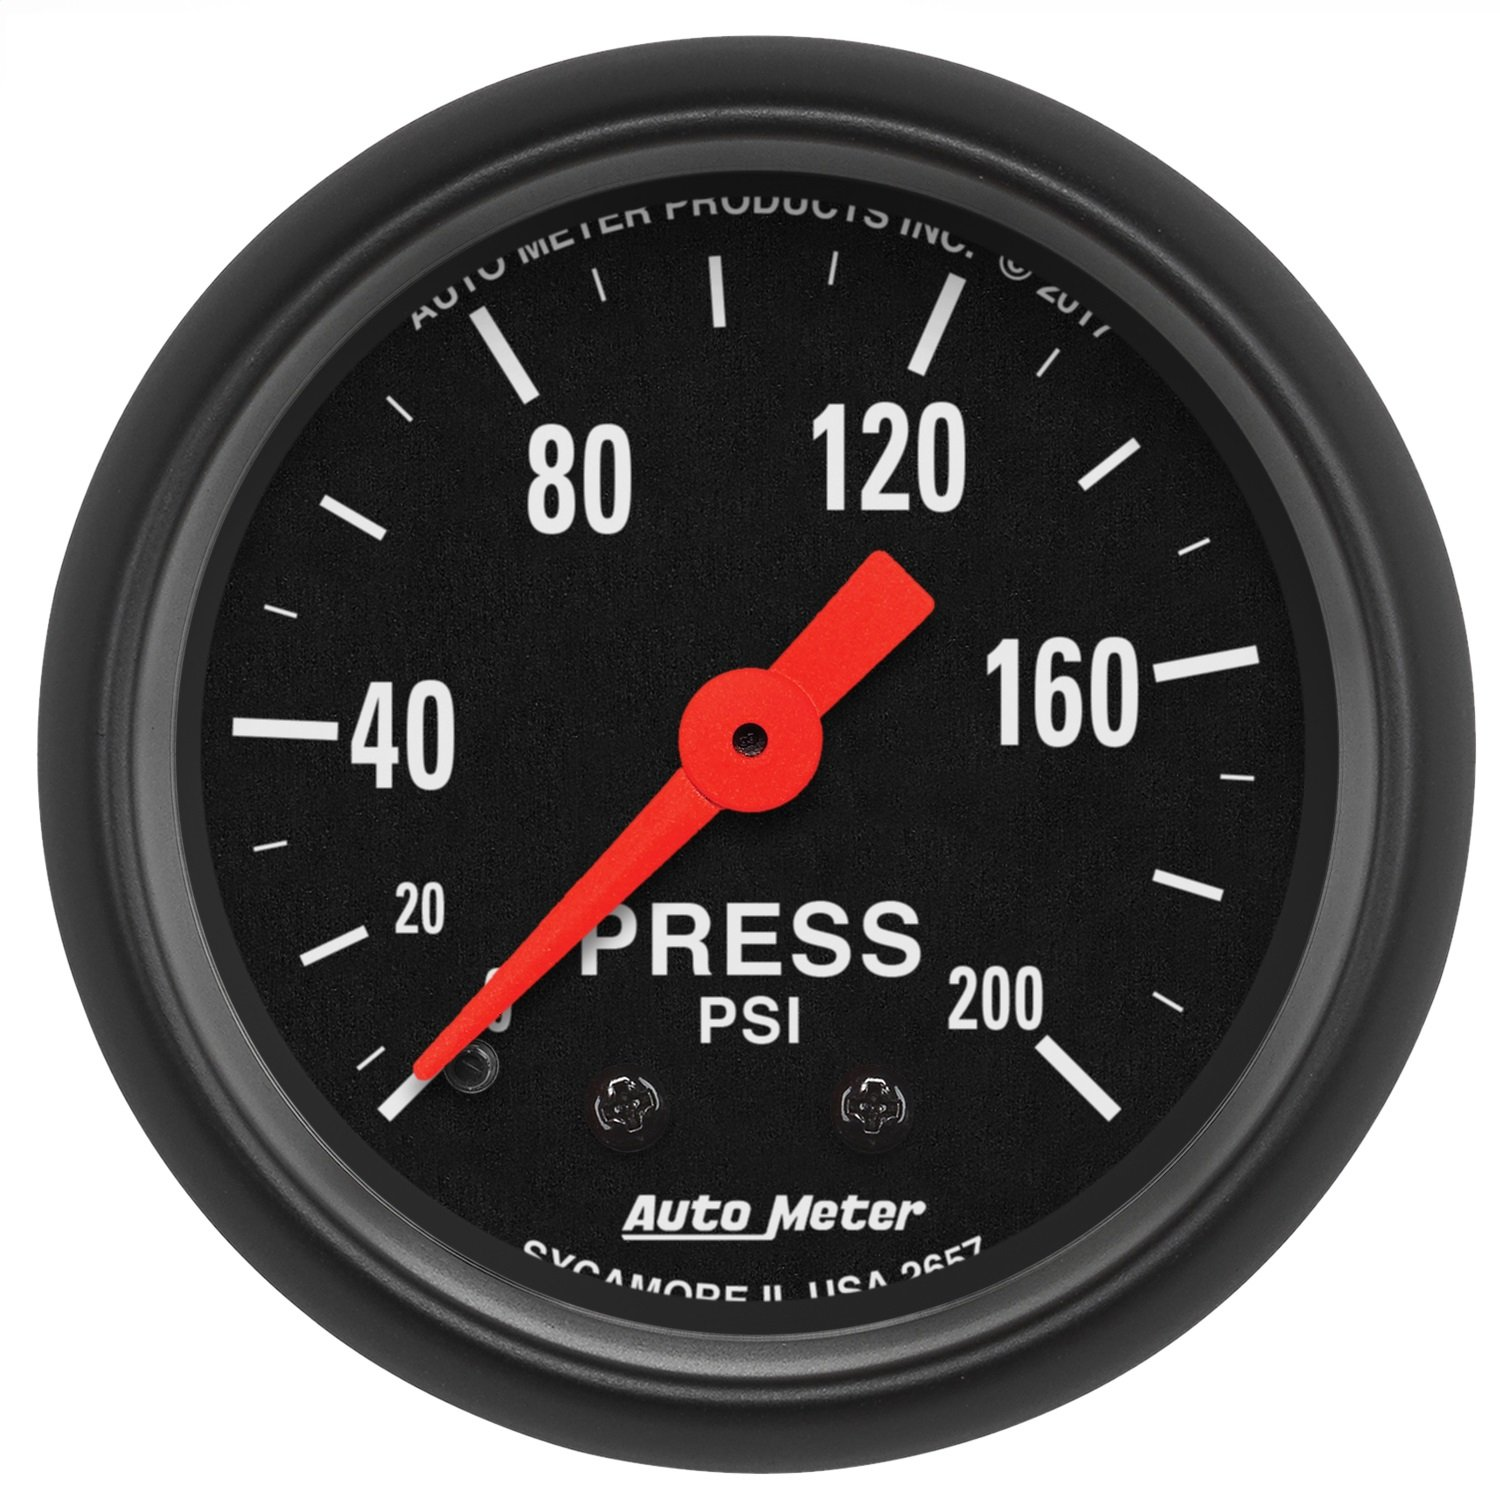 AutoMeter 2657 Z-Series Mechanical Pressure Gauge 2-1/16 in. 200 PSI Black Dial Face Black Bezel Fluorescent Red Pointer White Incandescent Lighting Z-Series Mechanical Pressure Gauge